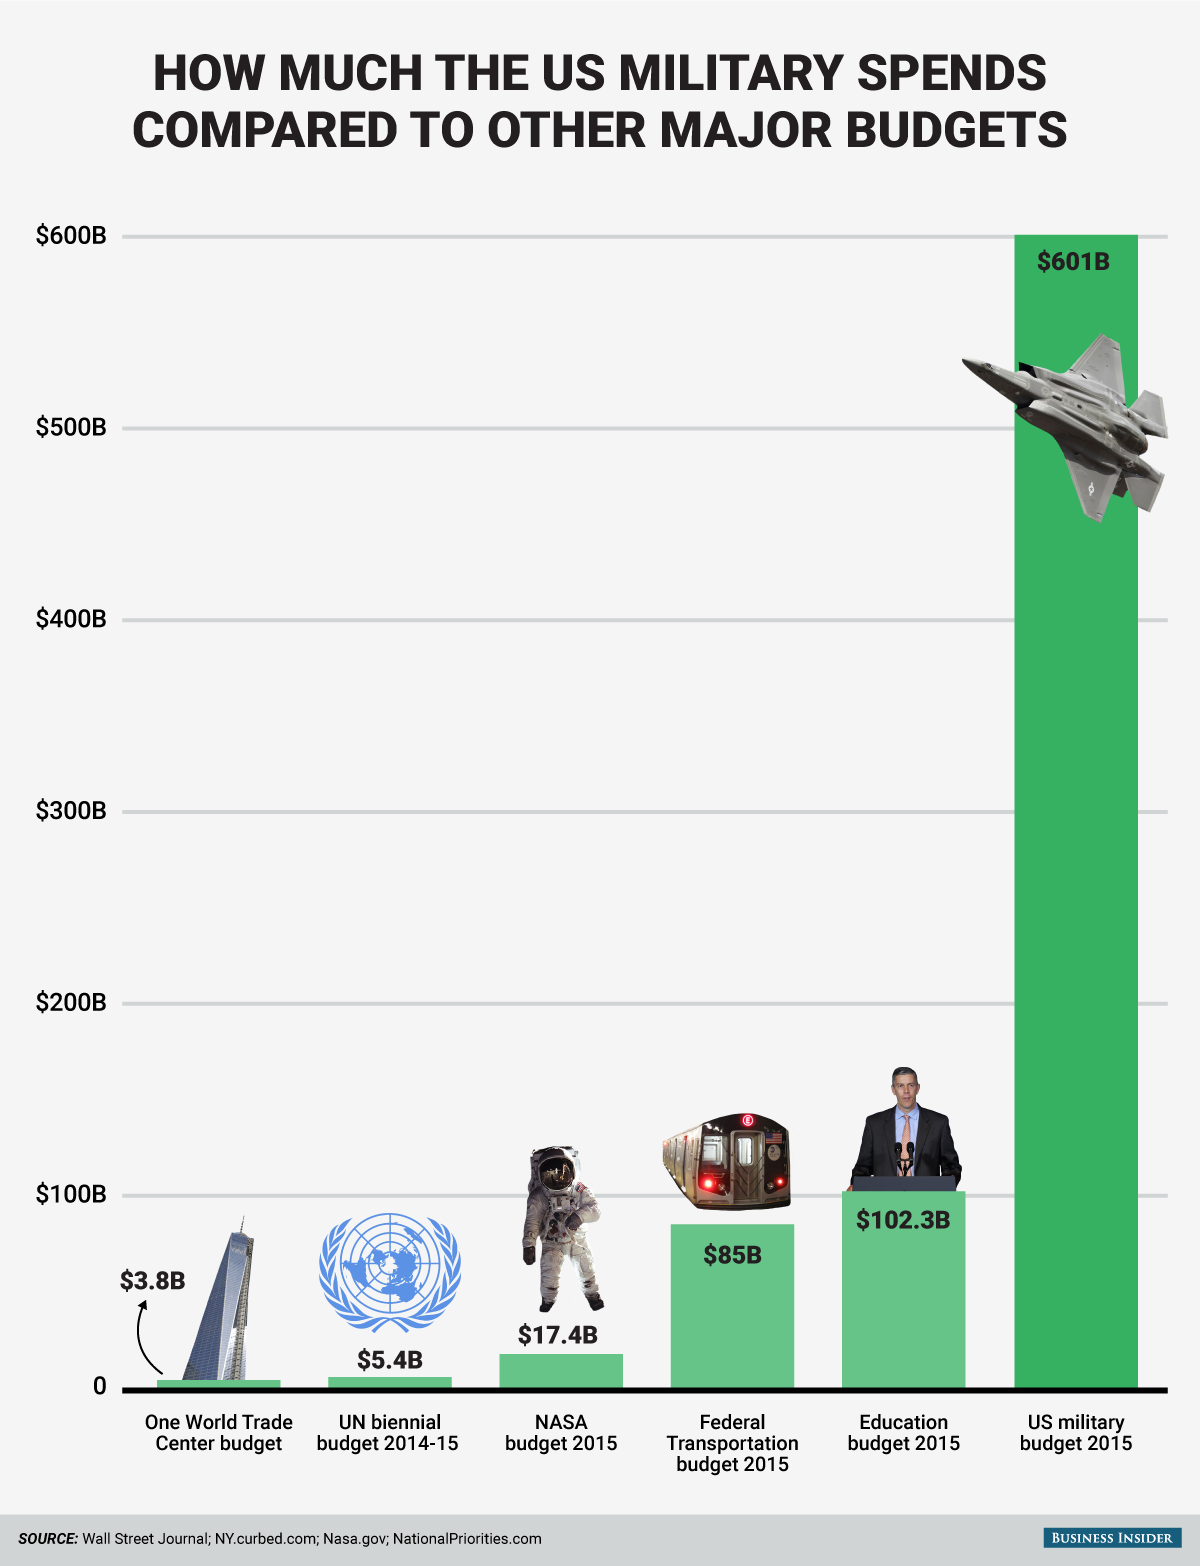 How Much The US Military Spends Compared to the Rest of the World